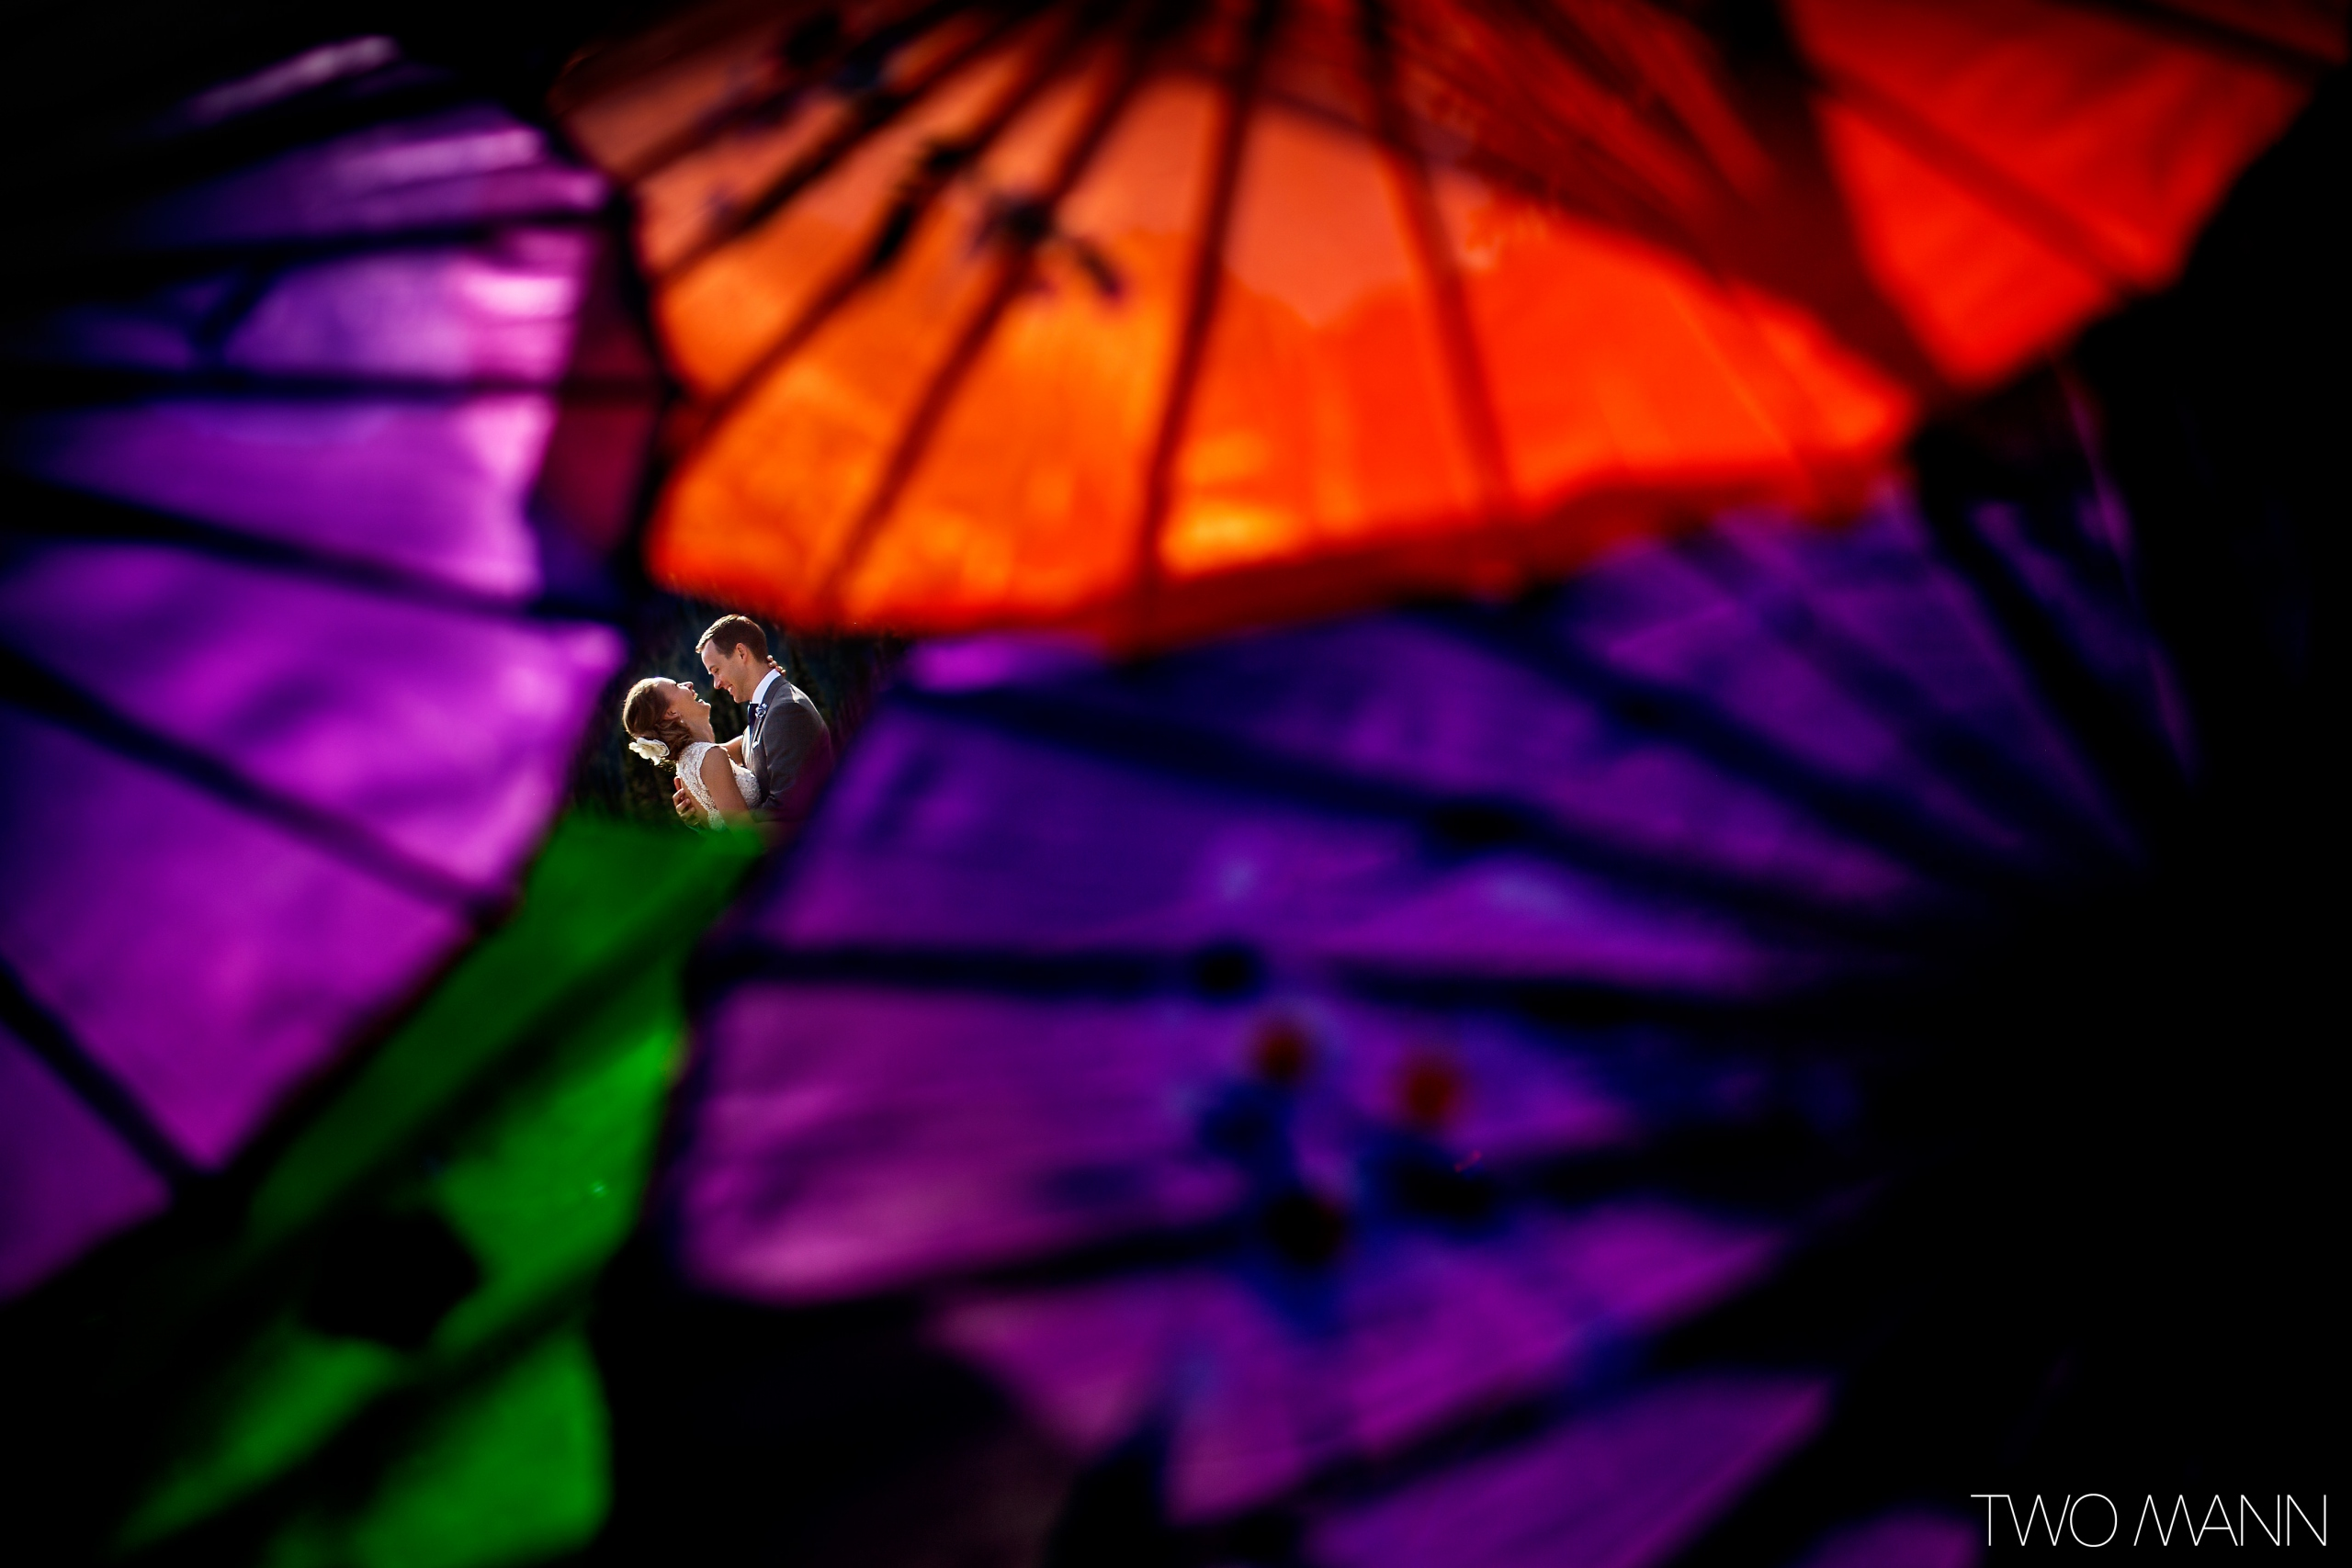 Groom embracing his bride with colorful parasols in the foreground